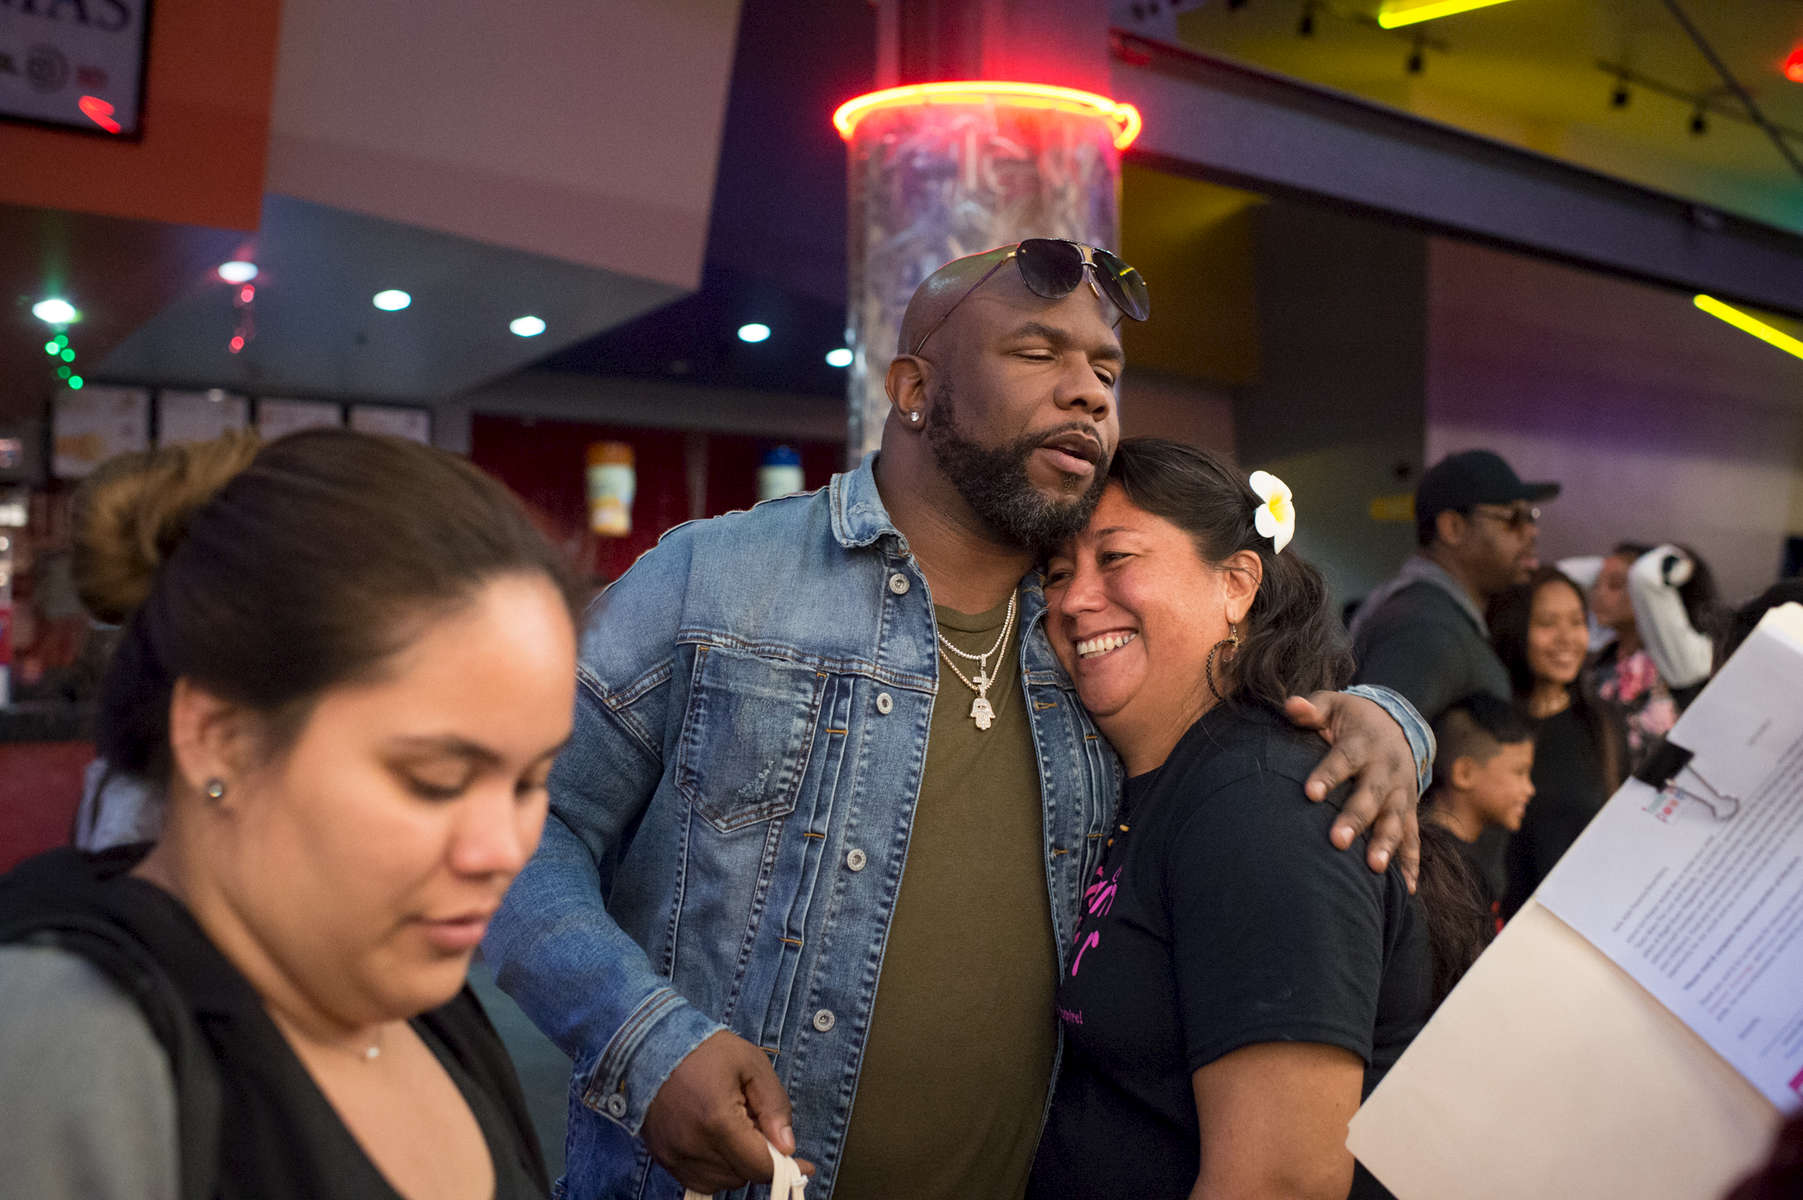 A Boyz II Men fan gets a hug from band member Wanya Morris after an evening showing of Star Wars: The Last Jedi at the Guam Premiere Outlets movie theater in Tamuning. (Dec. 14, 2017)Photo by Nancy Borowick